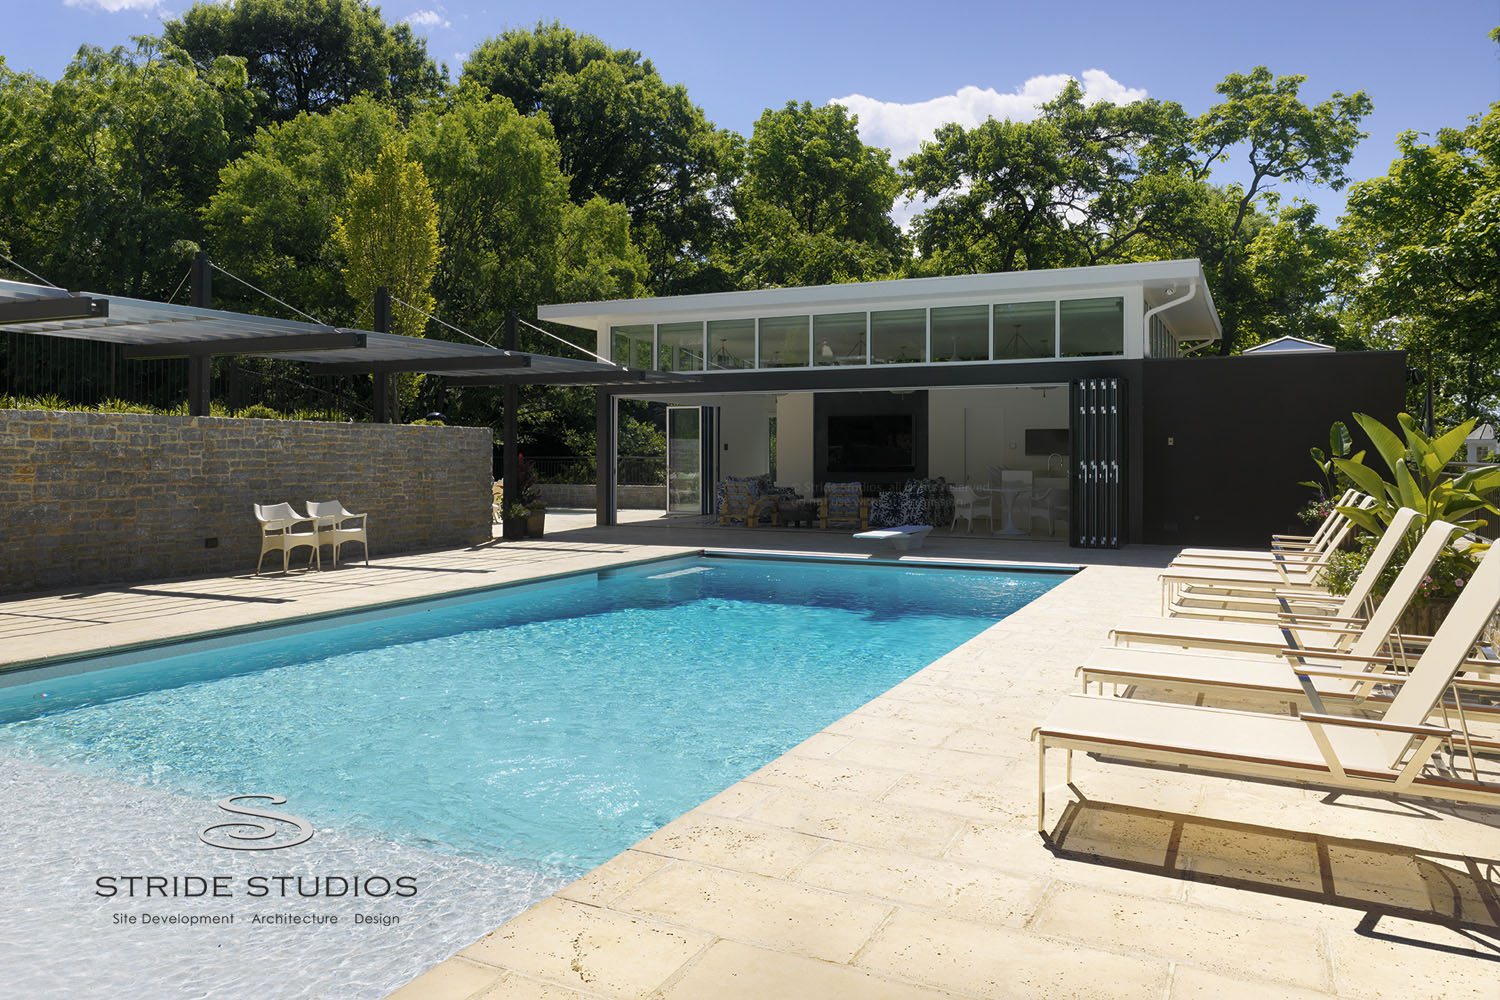 Stride Studios Pool Houses Play Houses Stride Studios